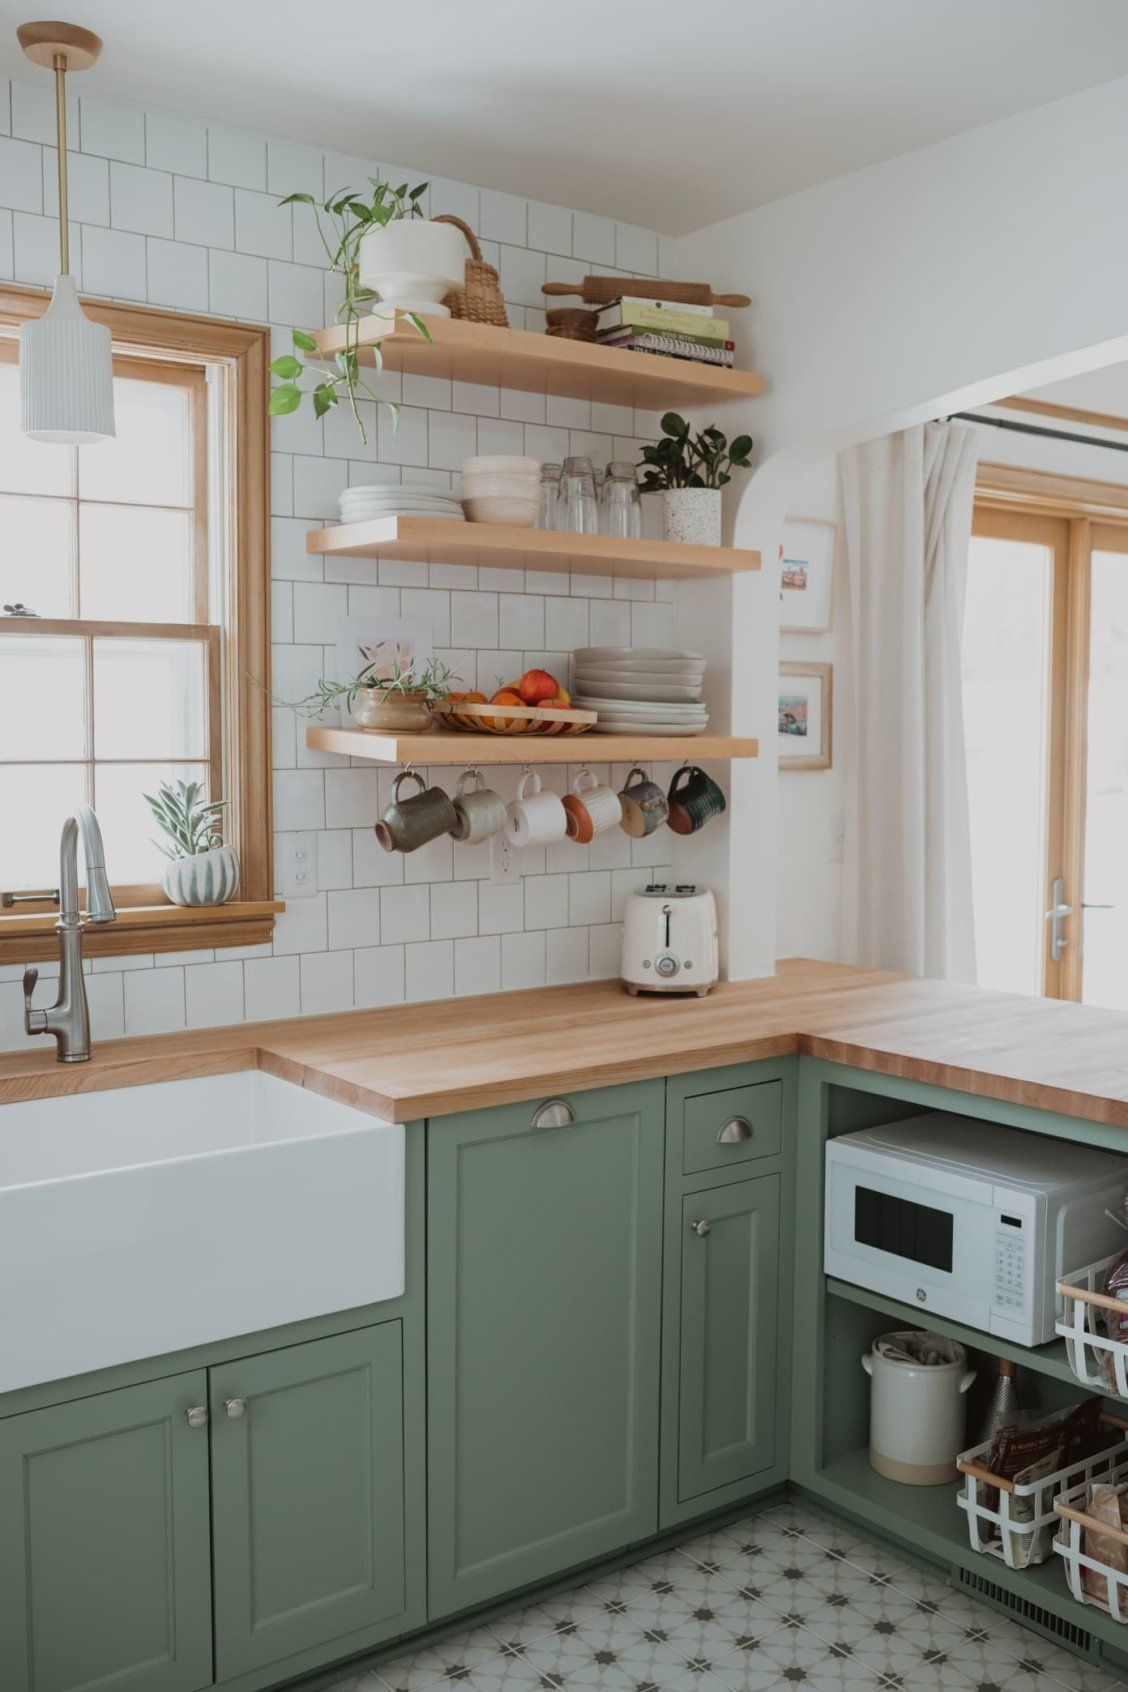 This kitchen is what happens when a DIY'er with a paintbrush learns to love color. #boho #bohochic #bohokitchen #kitchenideas #colorfulkitchen #kitchencabinets #greencabinets #subwaytile #kitchendecor #colorfuldecor